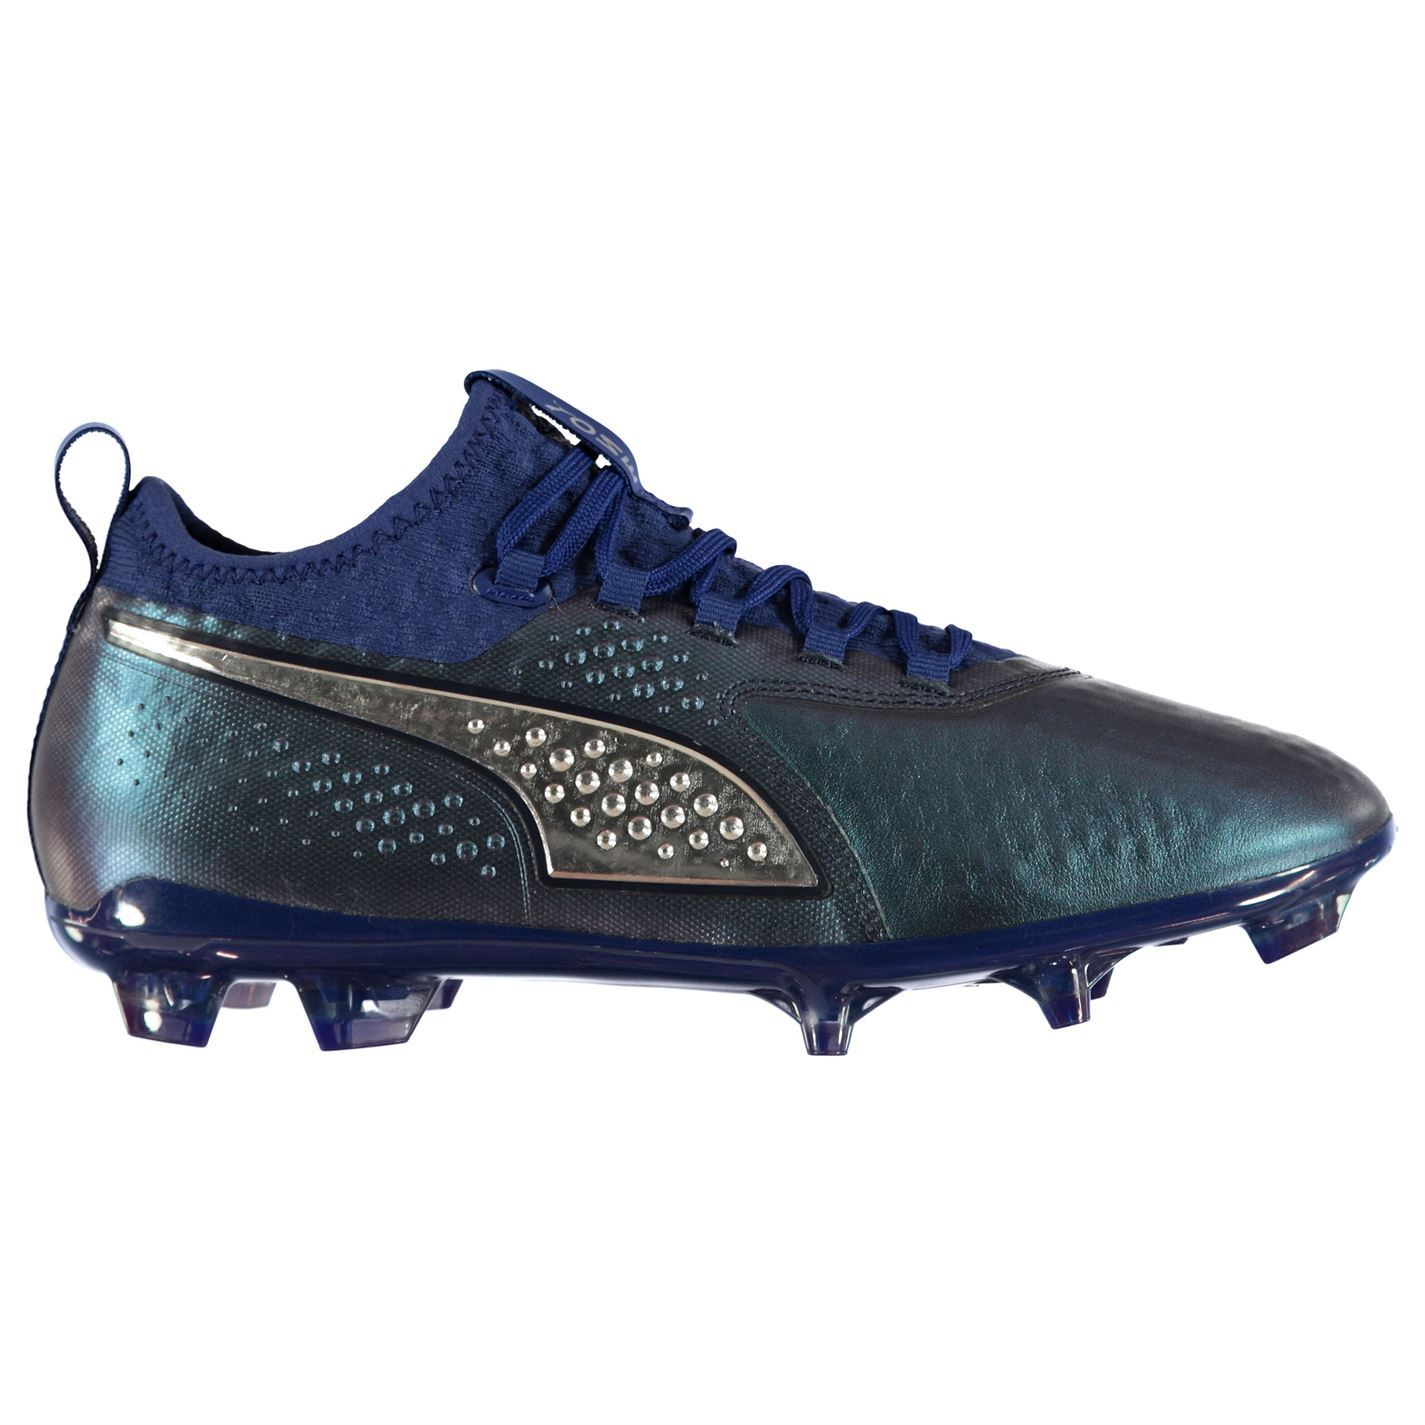 747b80c33 ... Puma ONE 2 FG Firm Ground Football Boots Mens Soccer Shoes Cleats